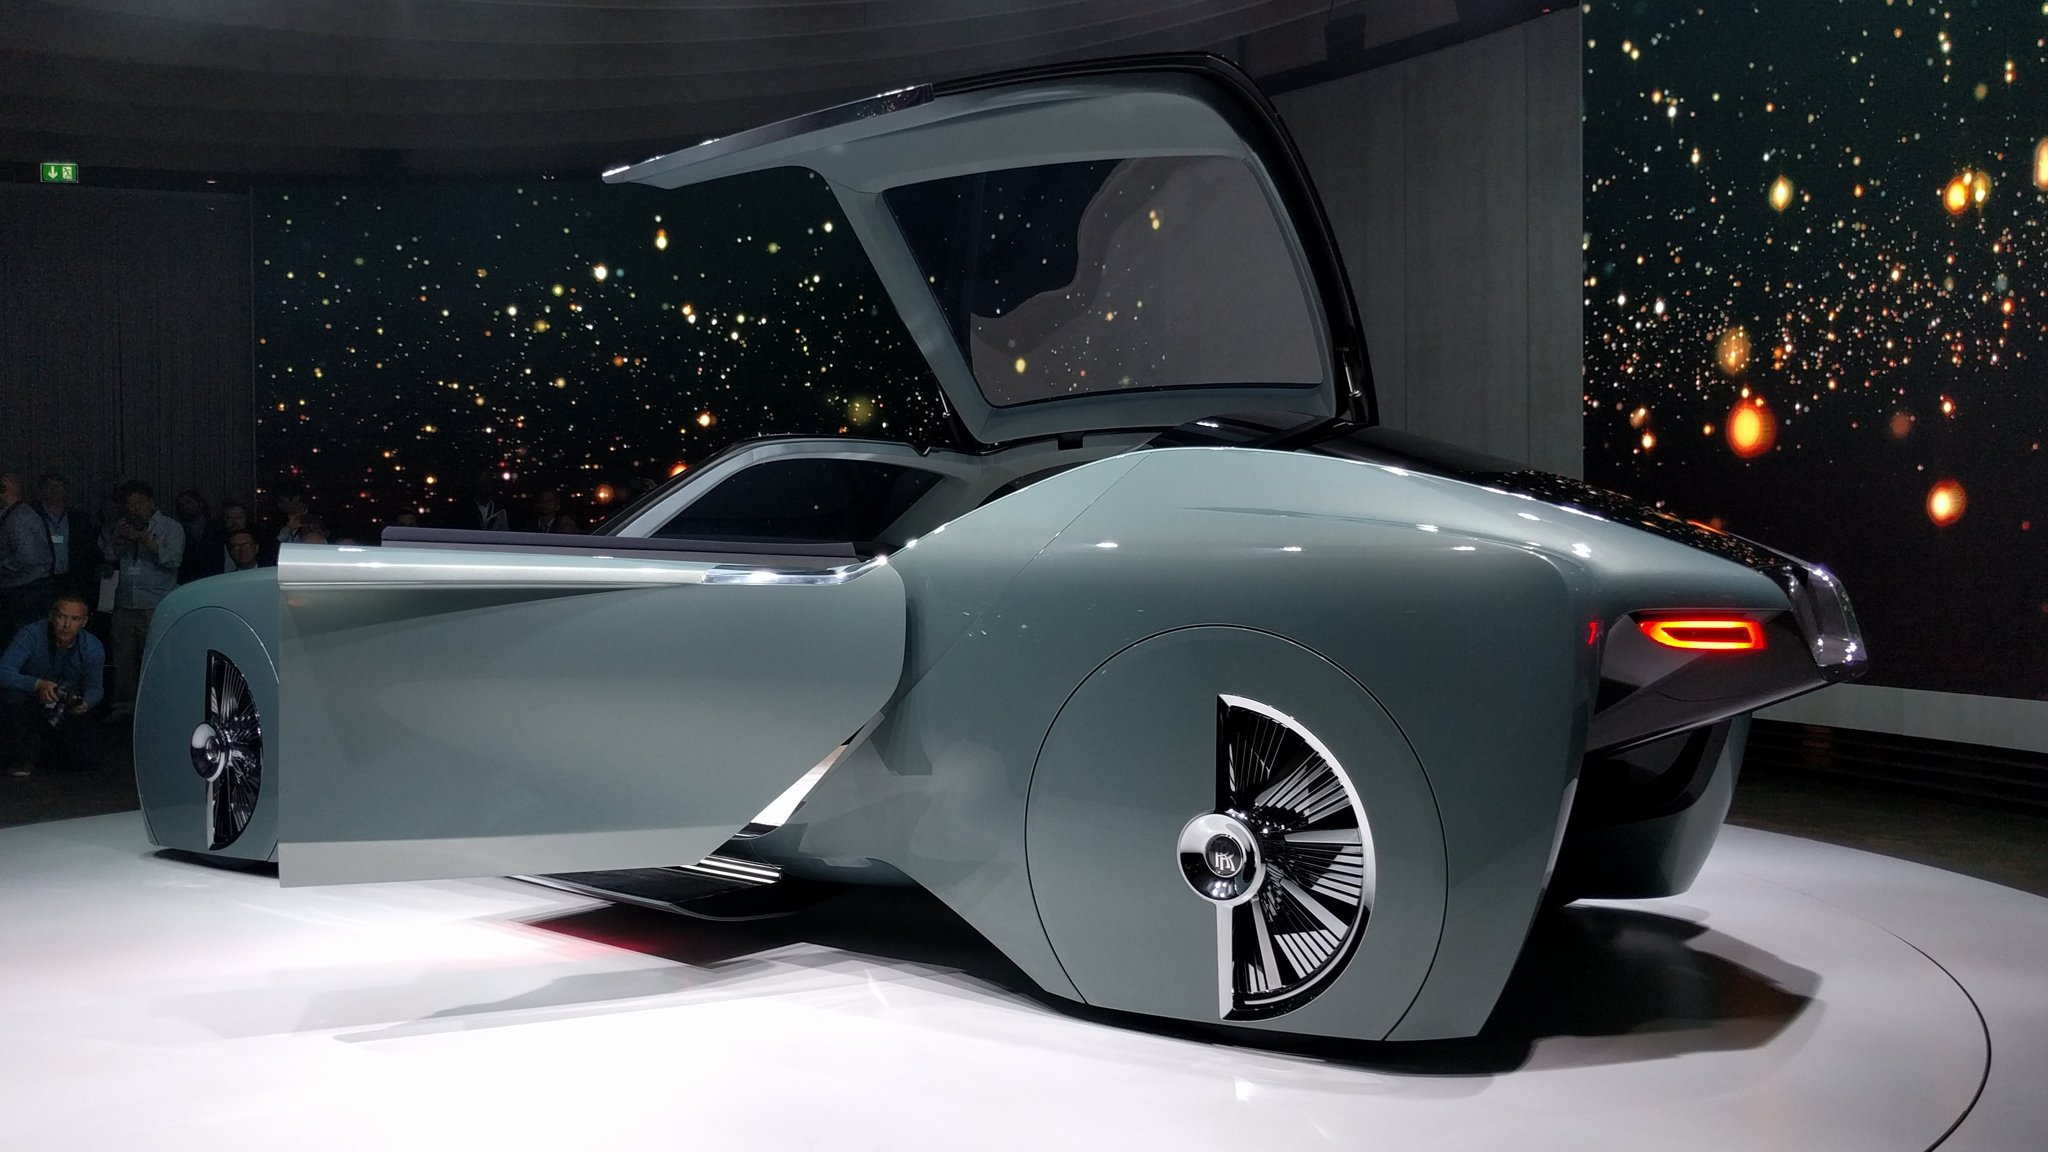 dc design rolls royce in london designer dc Rolls-Royce unveils its first driverless car